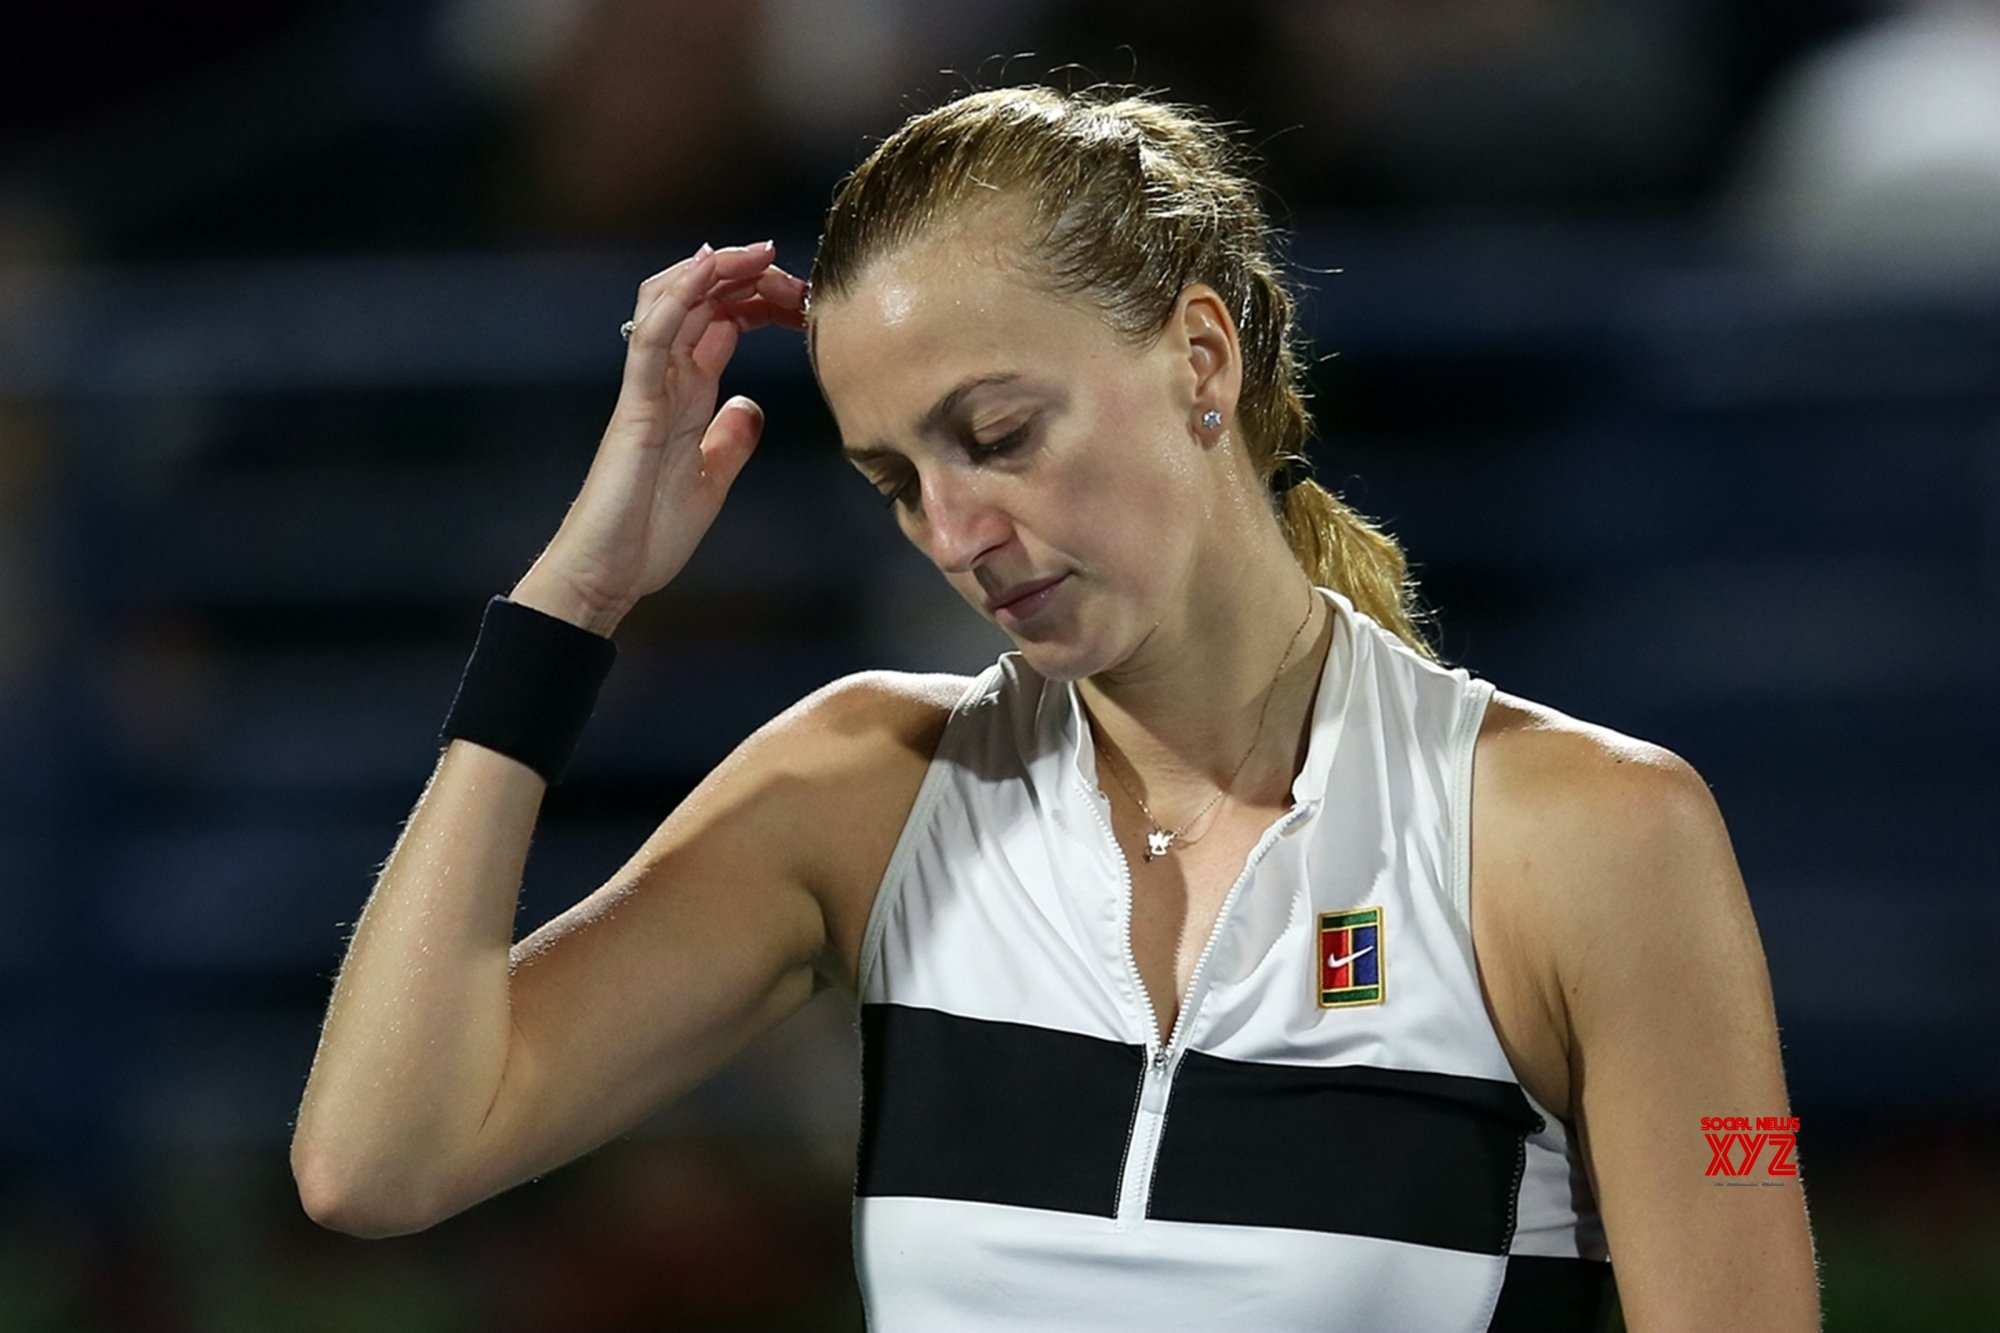 Forearm injury forces Kvitova out of French Open